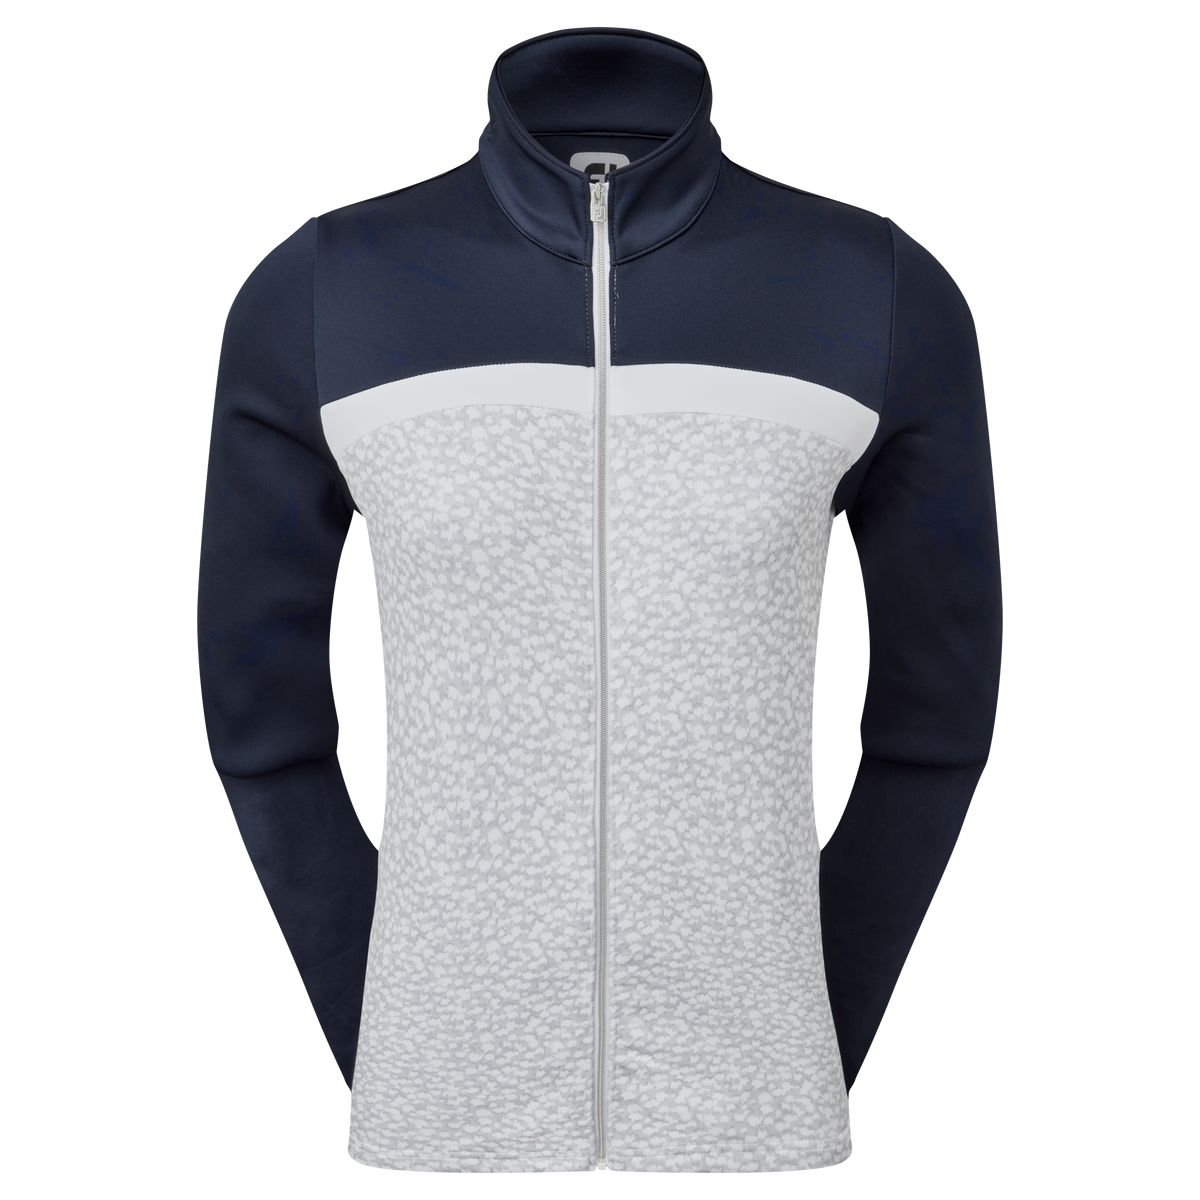 Women's Full-Zip Curved Colour Block Midlayer